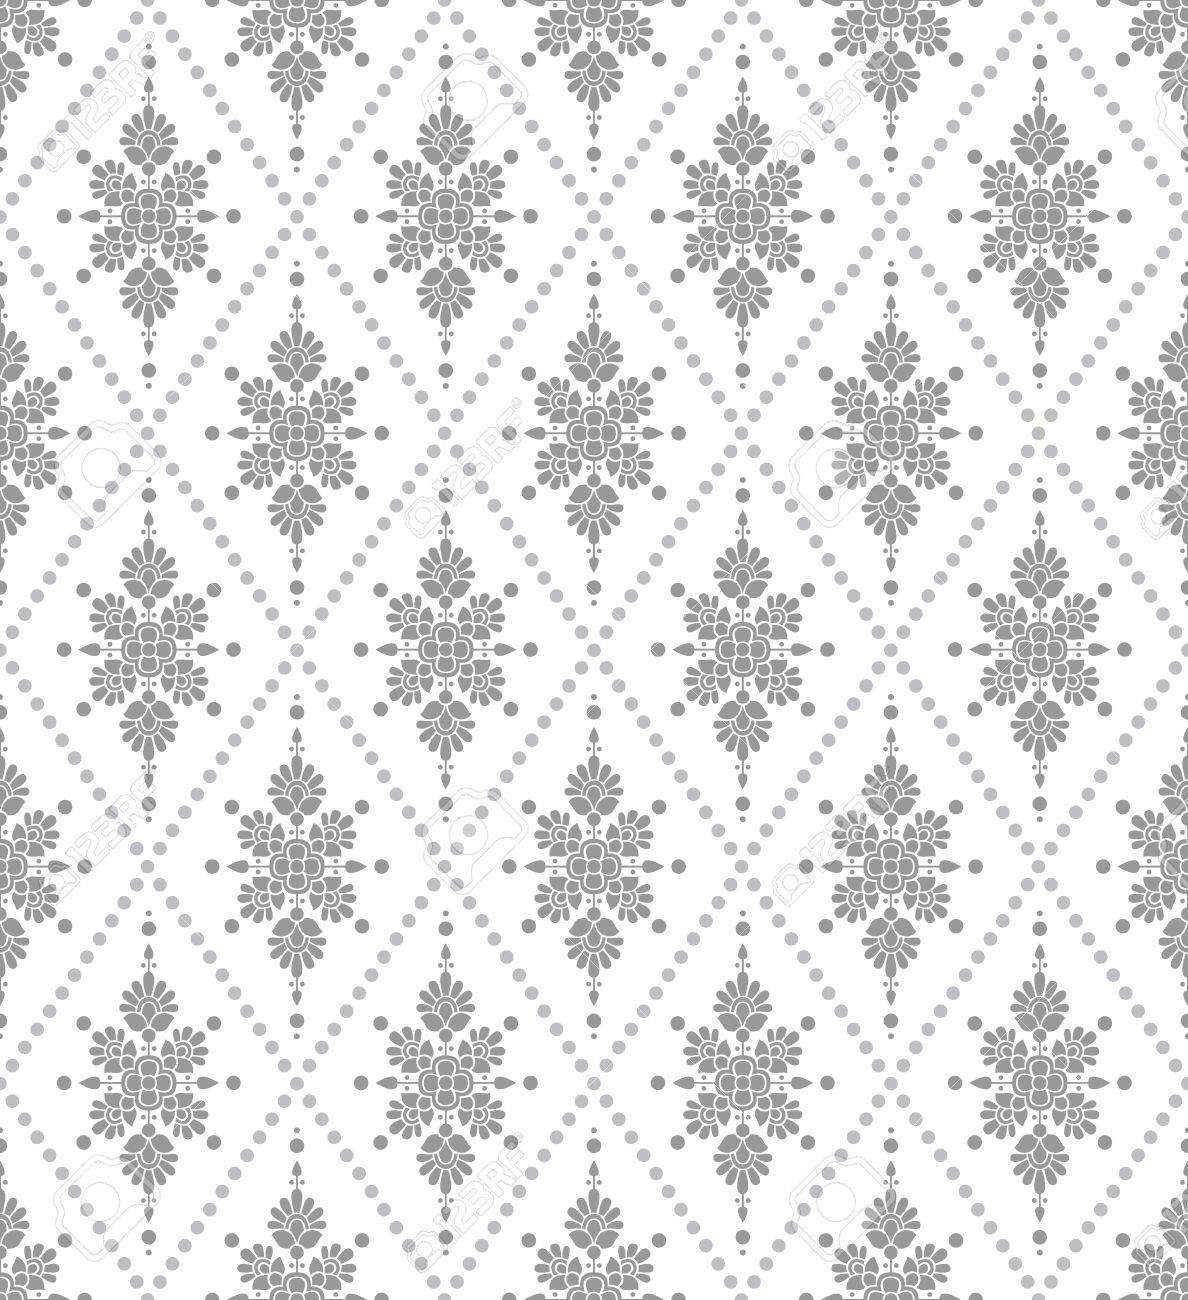 Seamless Silver Floral Wallpaper Royalty Free Cliparts Vectors